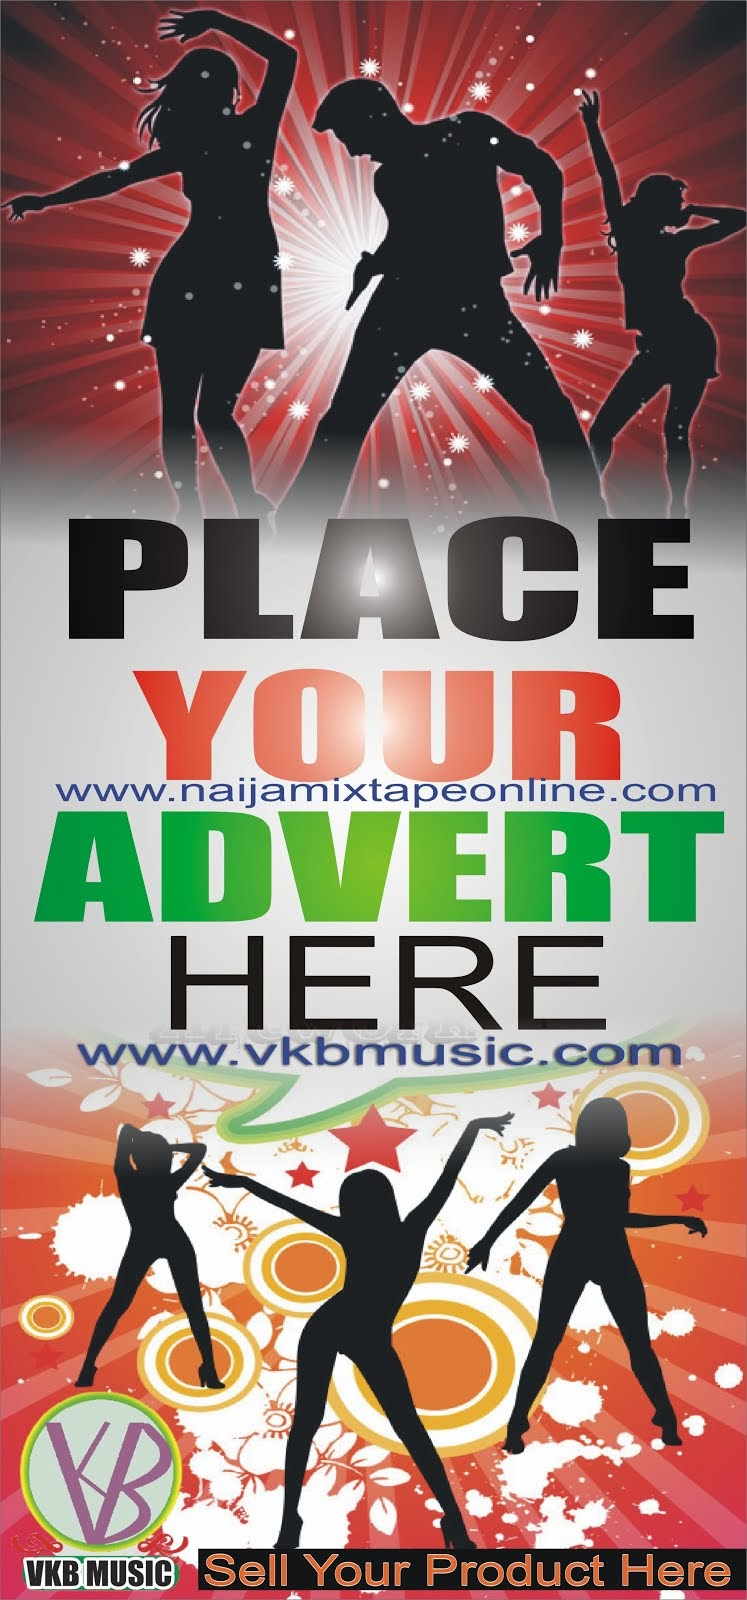 PLACE ADVERT HERE